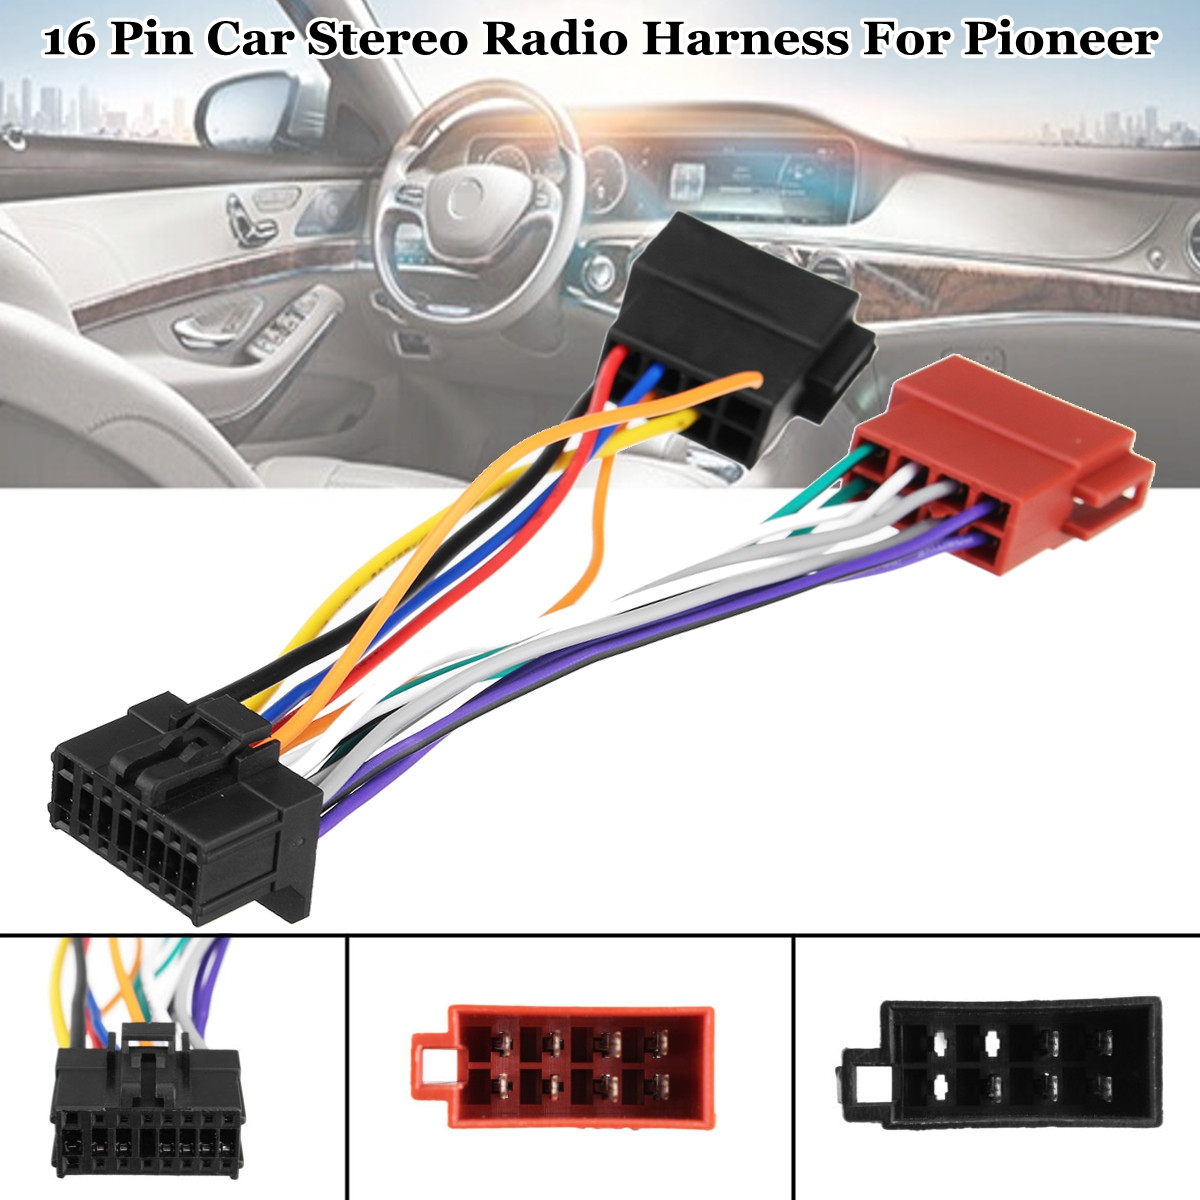 hight resolution of car stereo radio iso wiring harness connector 16 pin pi100 for pioneer 2003 on in cables adapters sockets from automobiles motorcycles on